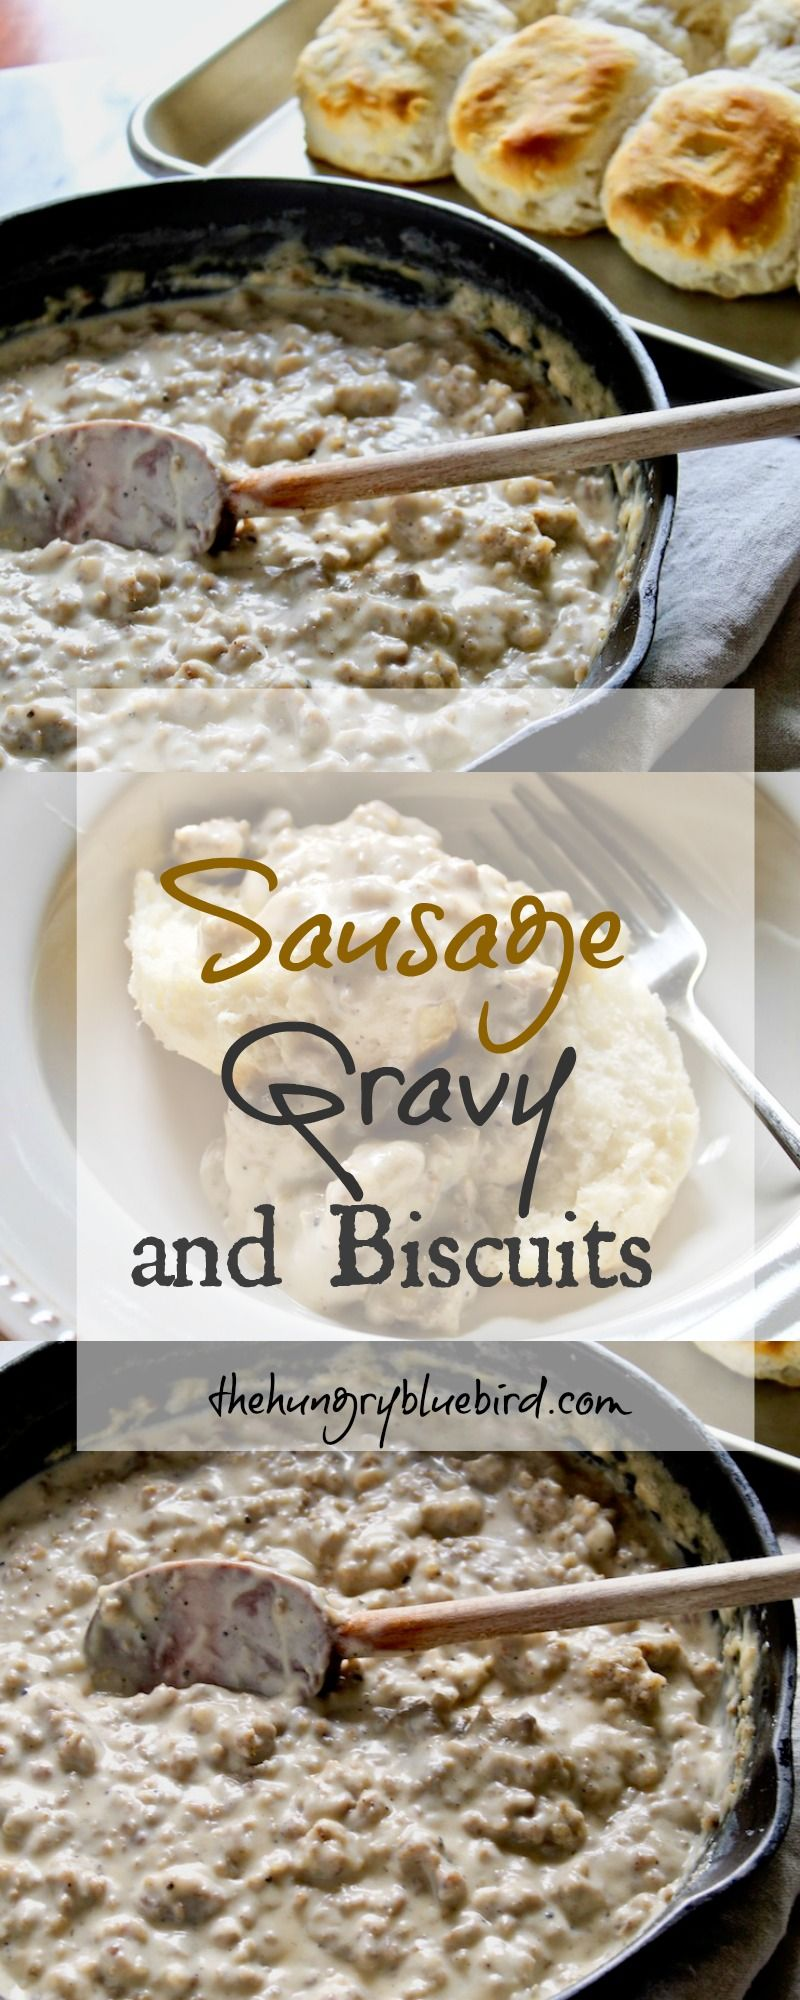 Easy Homemade Sausage Gravy And Biscuits Recipe Recipe Sausage Gravy And Biscuits Sausage Gravy Homemade Sausage Gravy